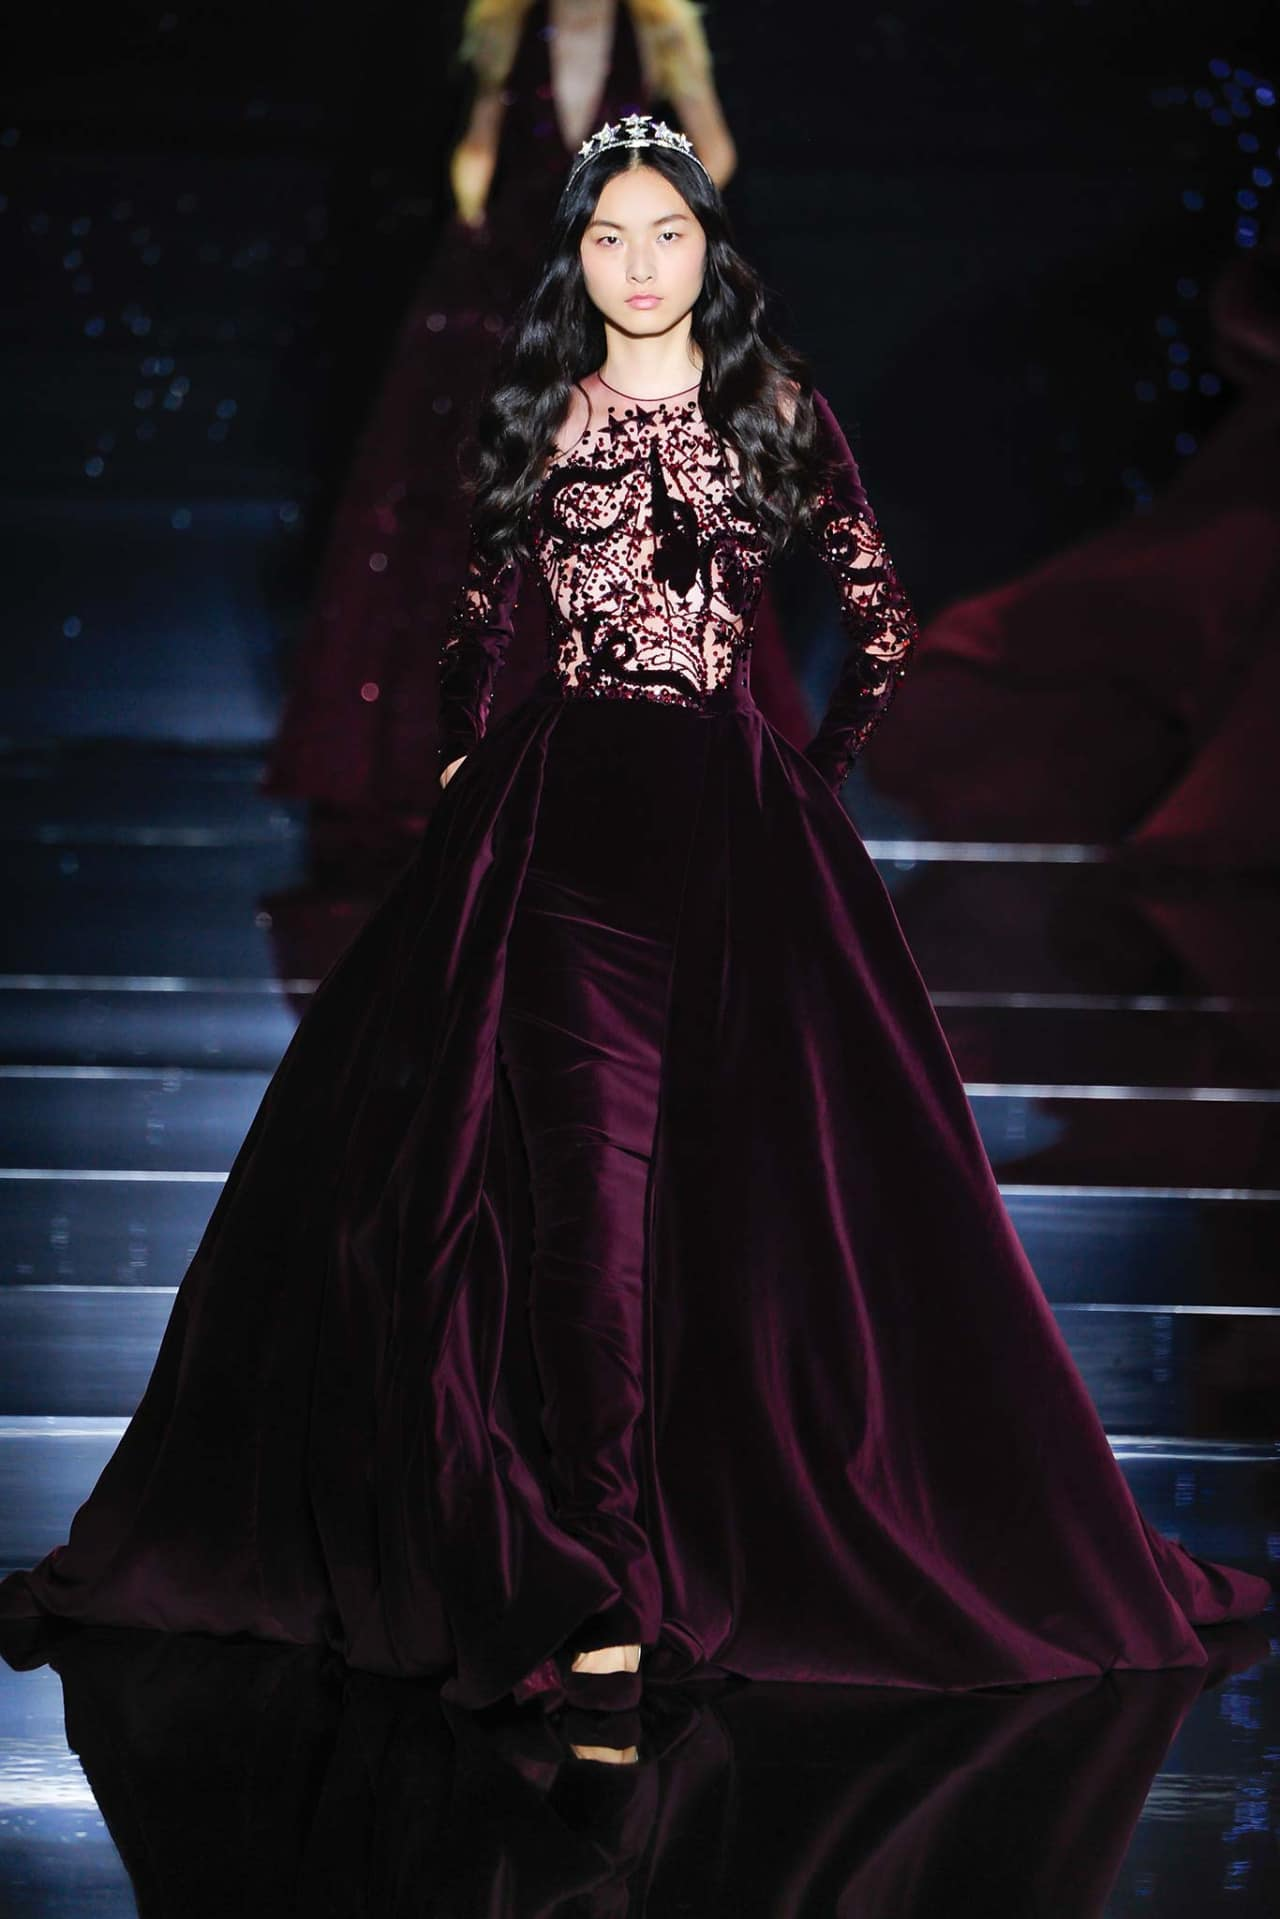 zuhair-murad-fall-2015-collection-5